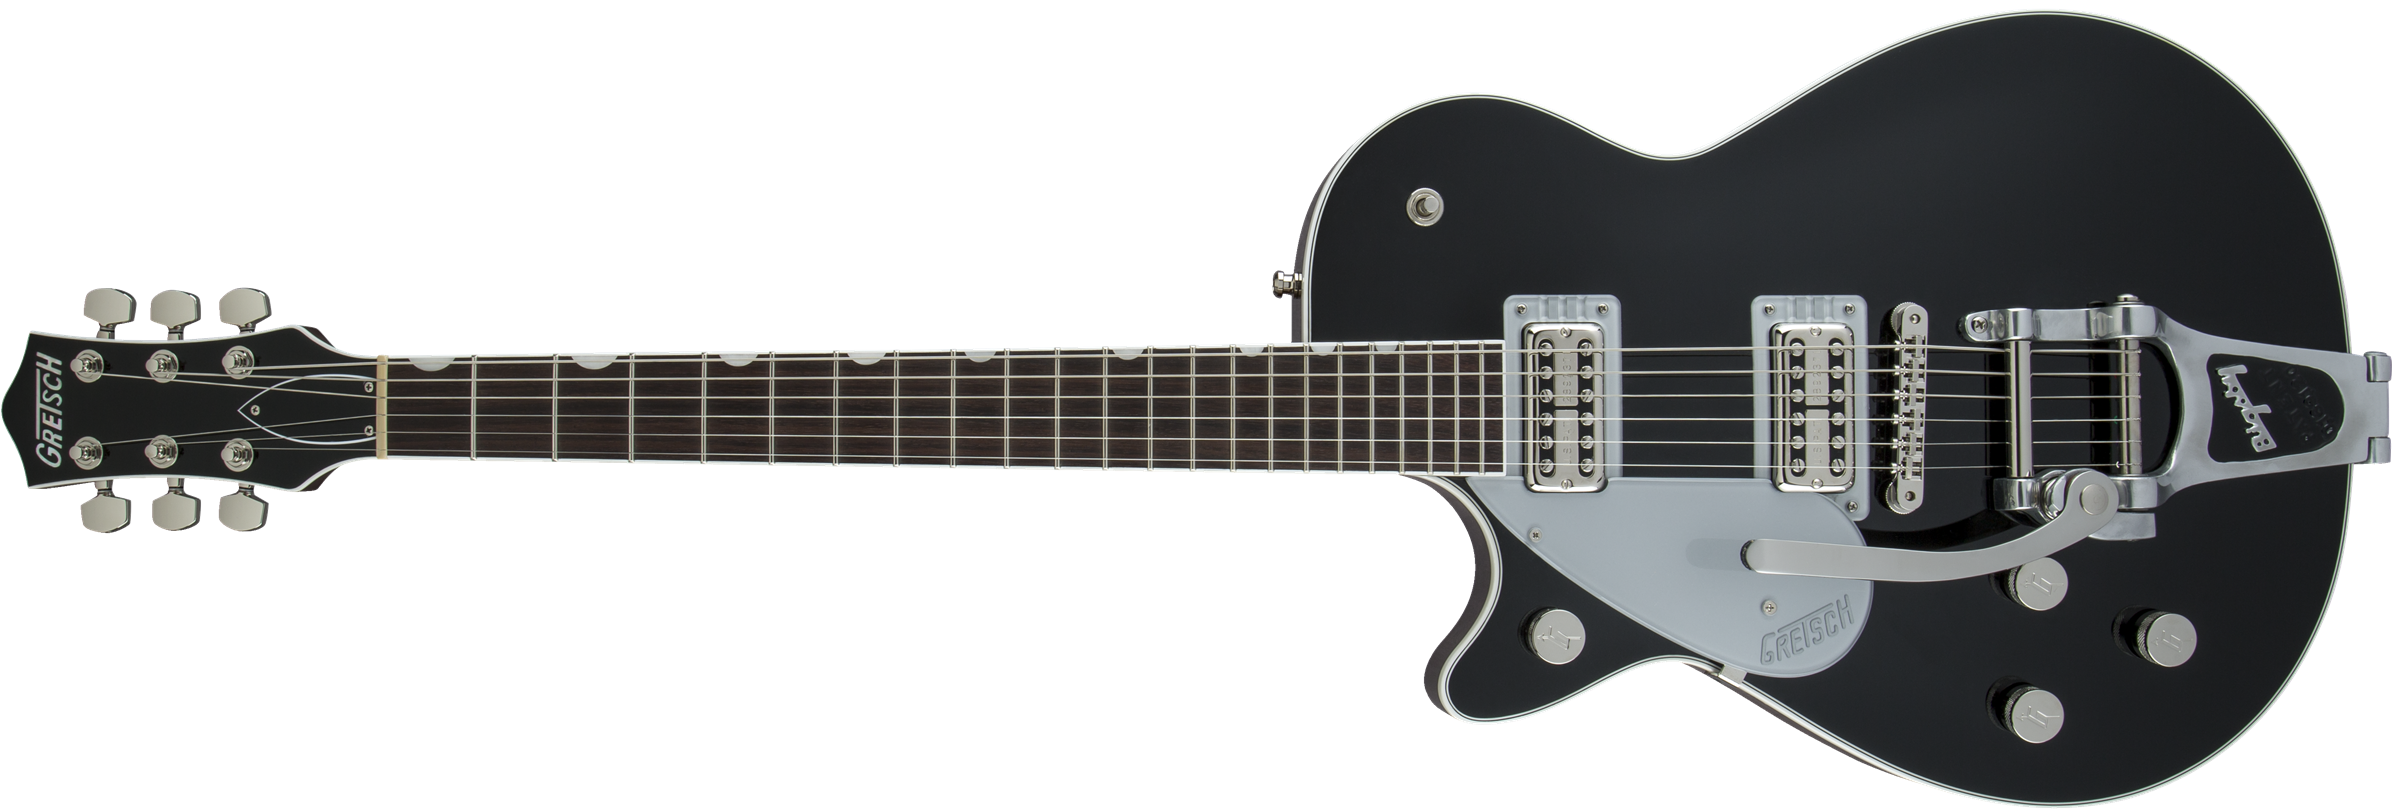 GRETSCH G6128TLH Players Edition Jet FT with Bigsby, Left-Handed, Rosewood Fingerboard, Black